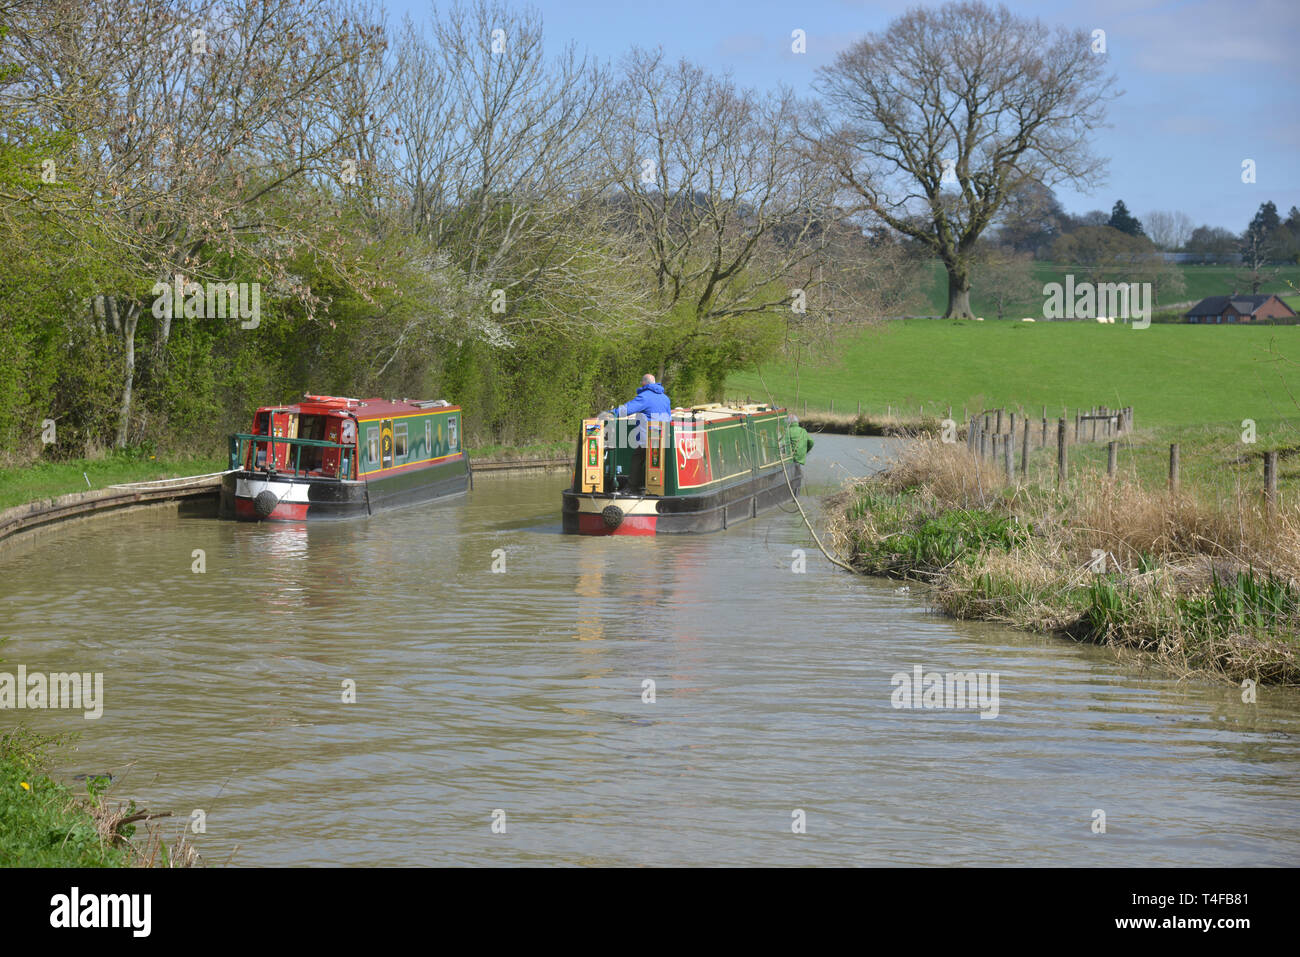 The Oxford Canal meanders through the Warwickshire countryside near the village of Wormleighton as a narrow boat sails along it. Stock Photo